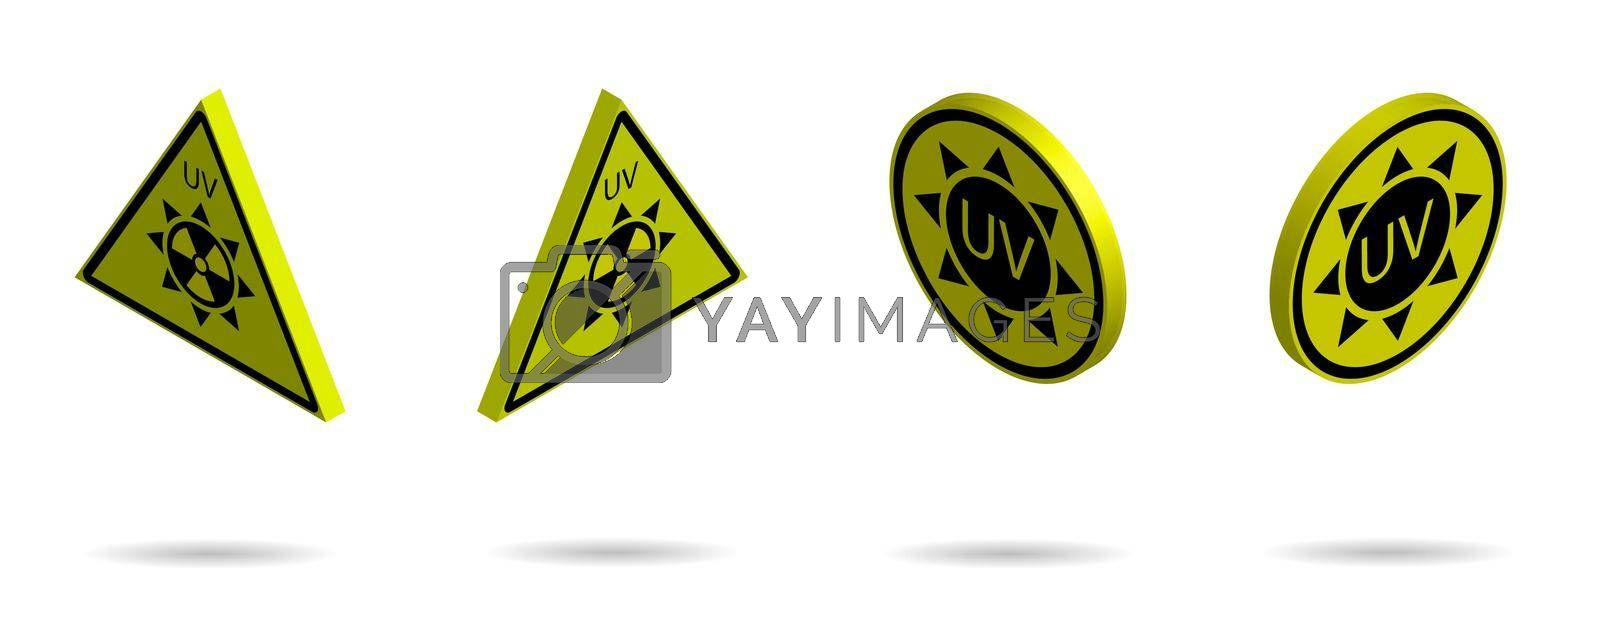 set of 3d danger signs on a yellow background, high solar activity. Increased ultraviolet radiation. Protection against sunburn. Isolated vector on white background